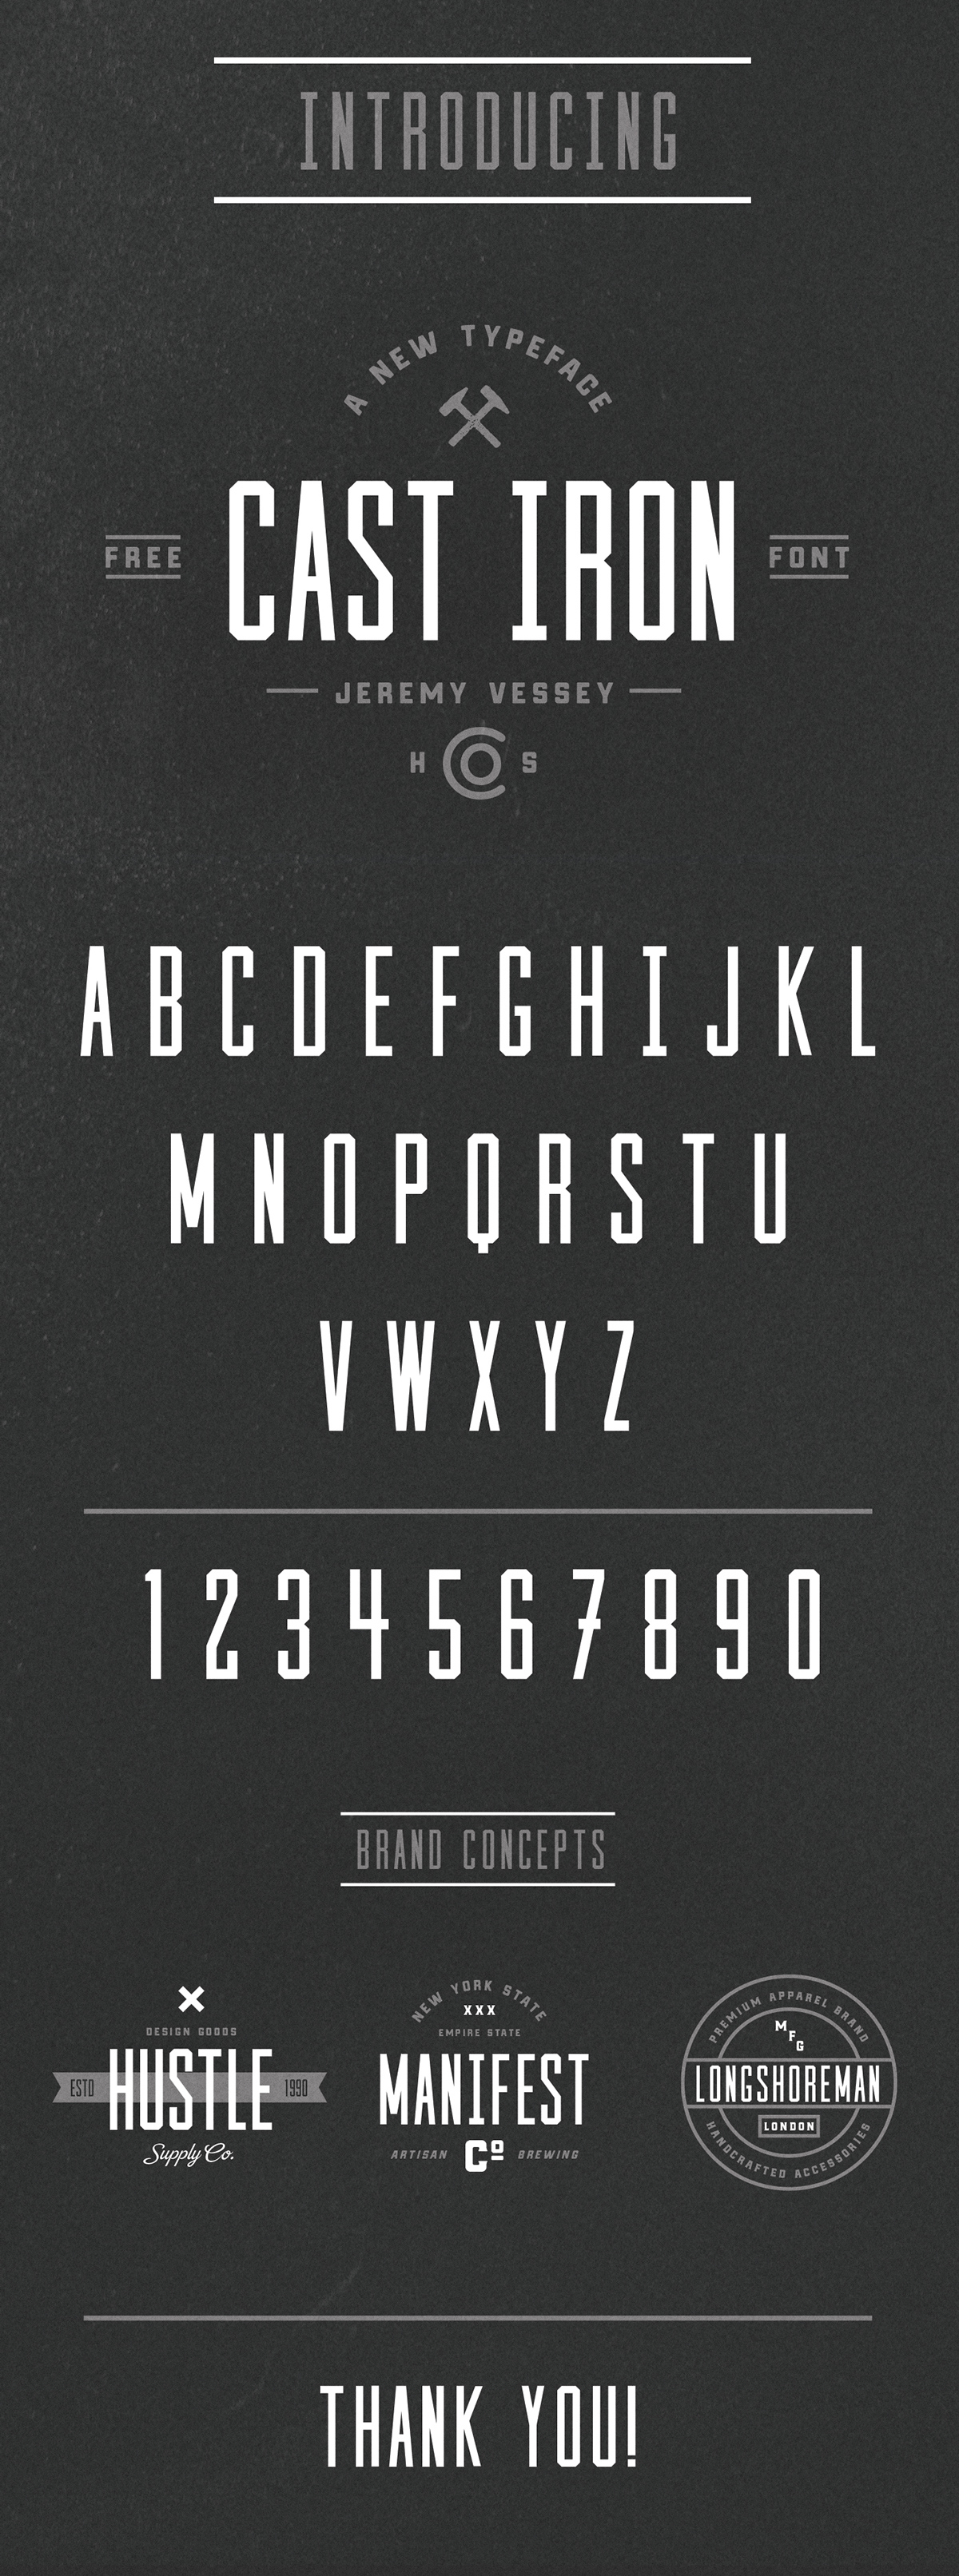 A and free condensed sansserif font, courtesy of